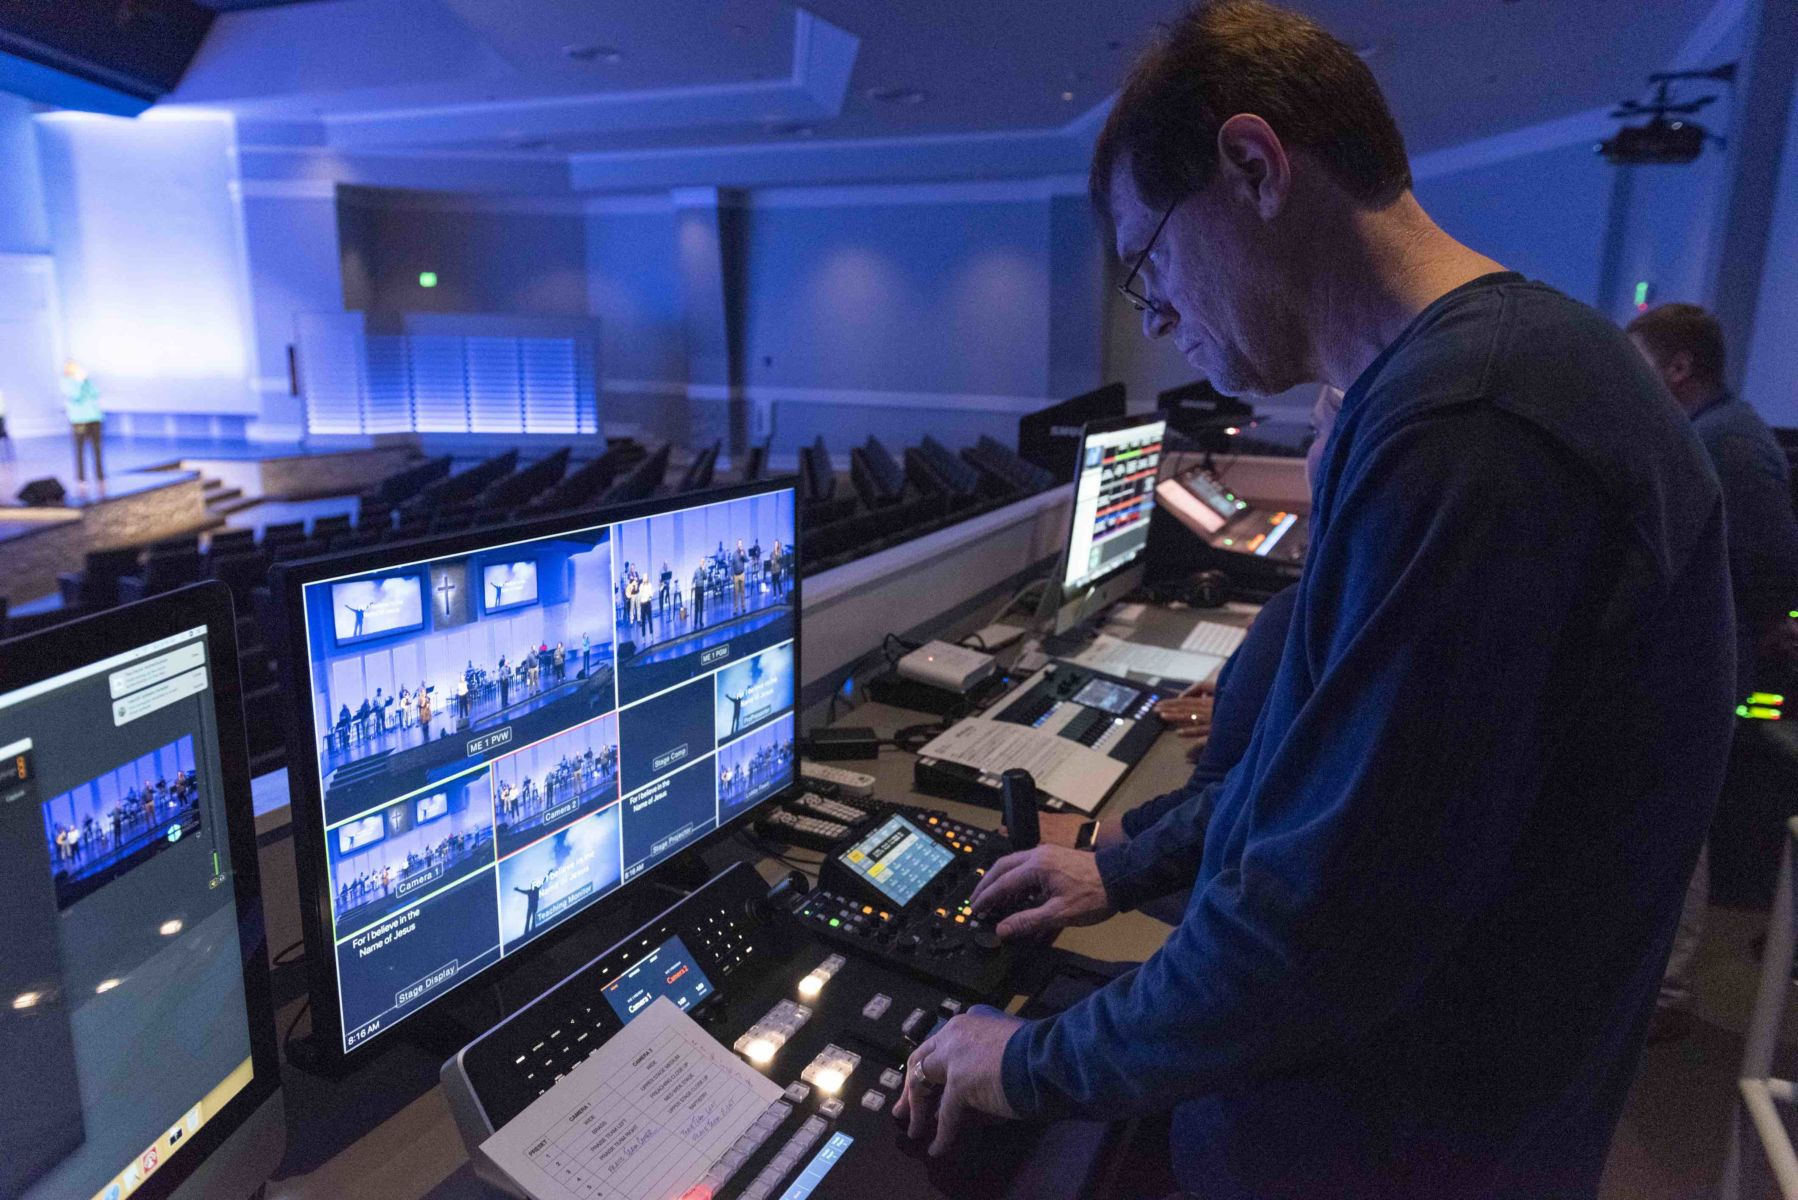 Church-Live-Streaming-Equipment-Software